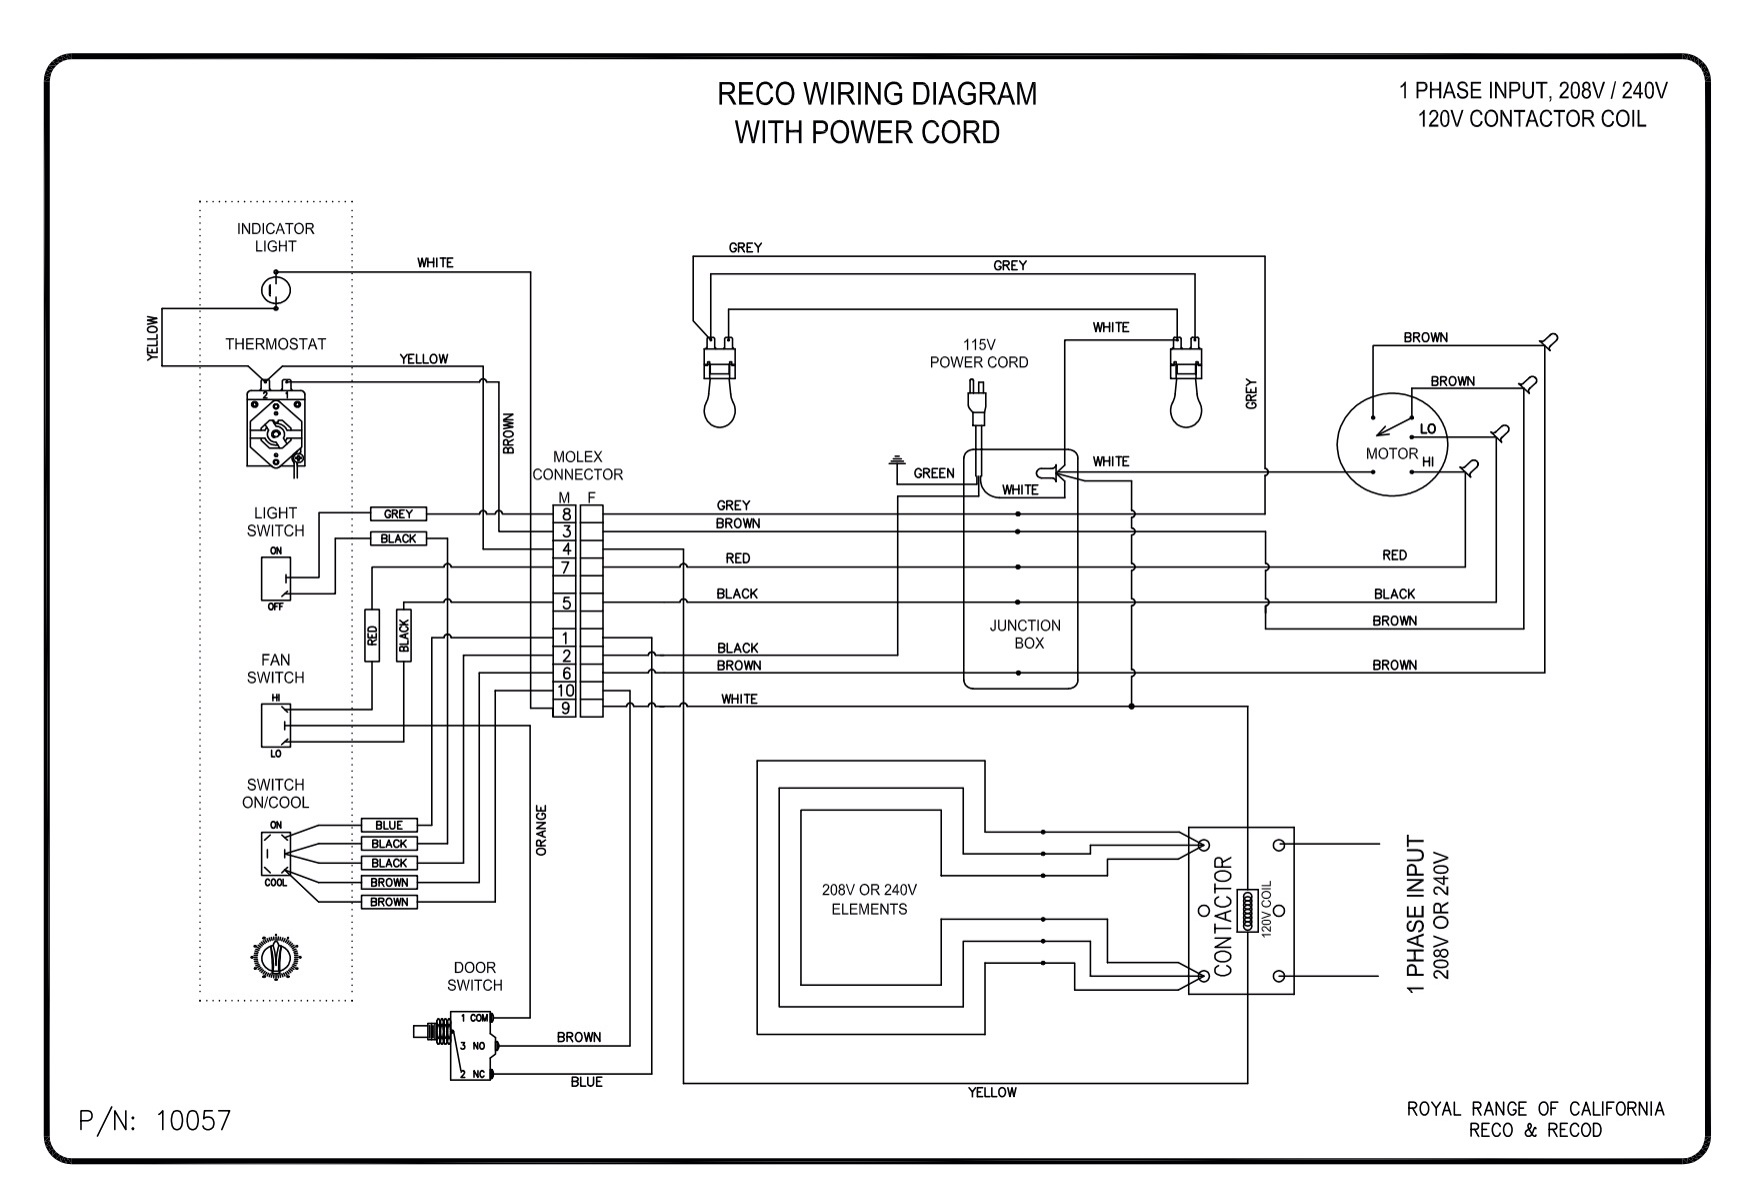 DIAGRAM] Acdelco Mu1614 Wiring Diagram FULL Version HD Quality Wiring  Diagram - DIAGRAMDRY.JOKERGIOCHI.ITjoker